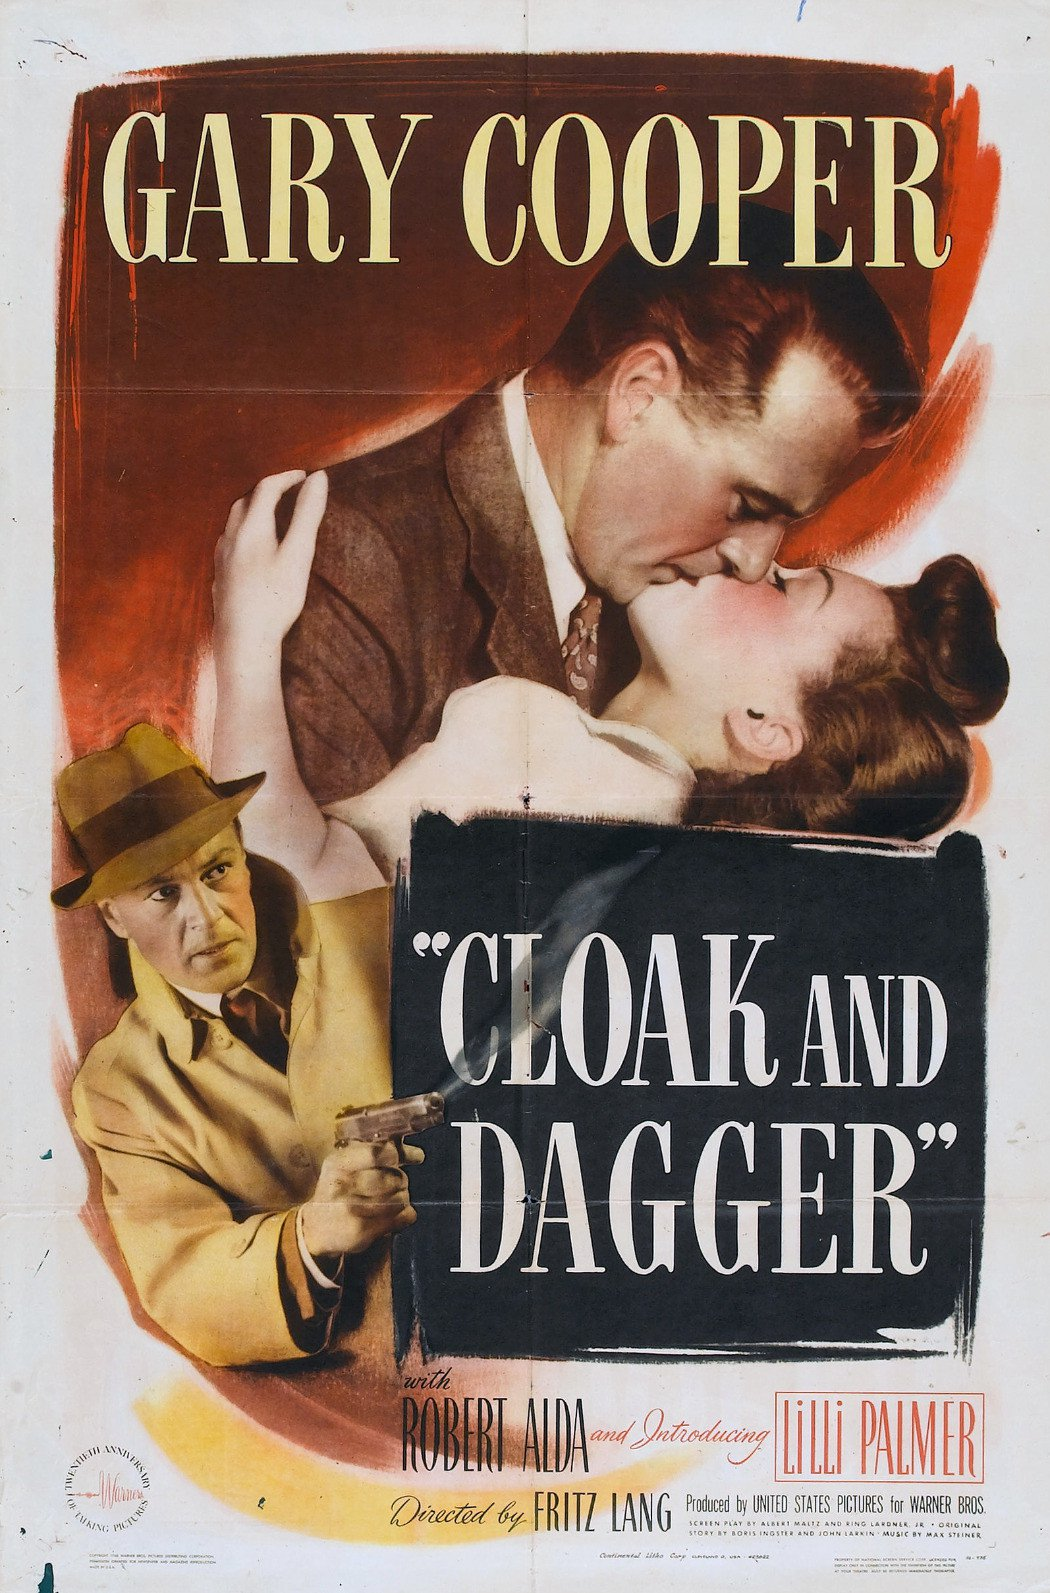 - In this Fritz Lang's compelling World War II espionage thriller, Gary Cooper stars as Alvah Jasper, a shy and retiring physics professor at a midwestern university. When government agents press Jasper into joining them in an effort to curtail the Nazis' efforts to attain atomic secrets, his life takes a dramatic turn.19461 h 46 min